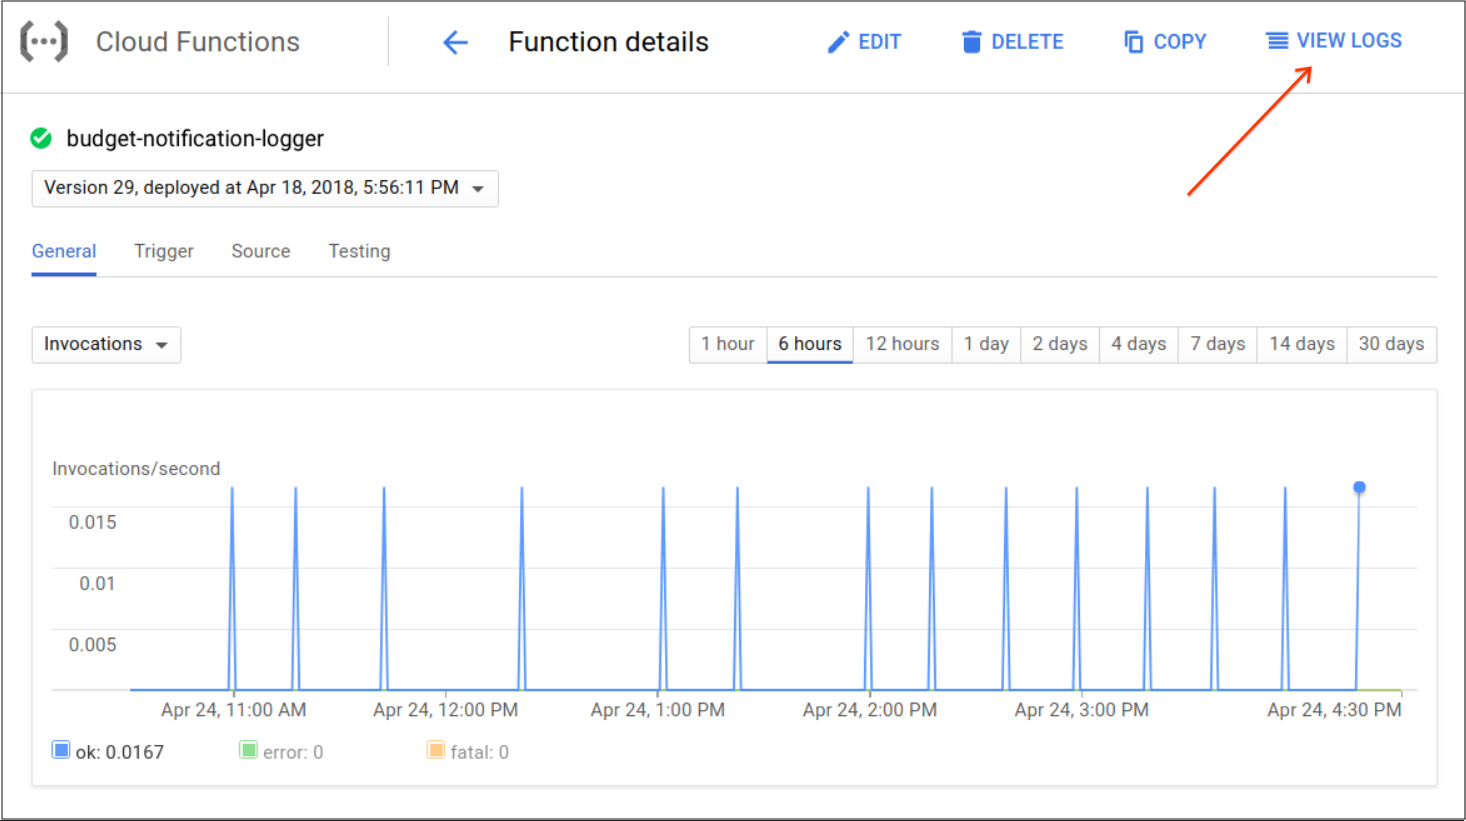 View Cloud Function events in the GCP console